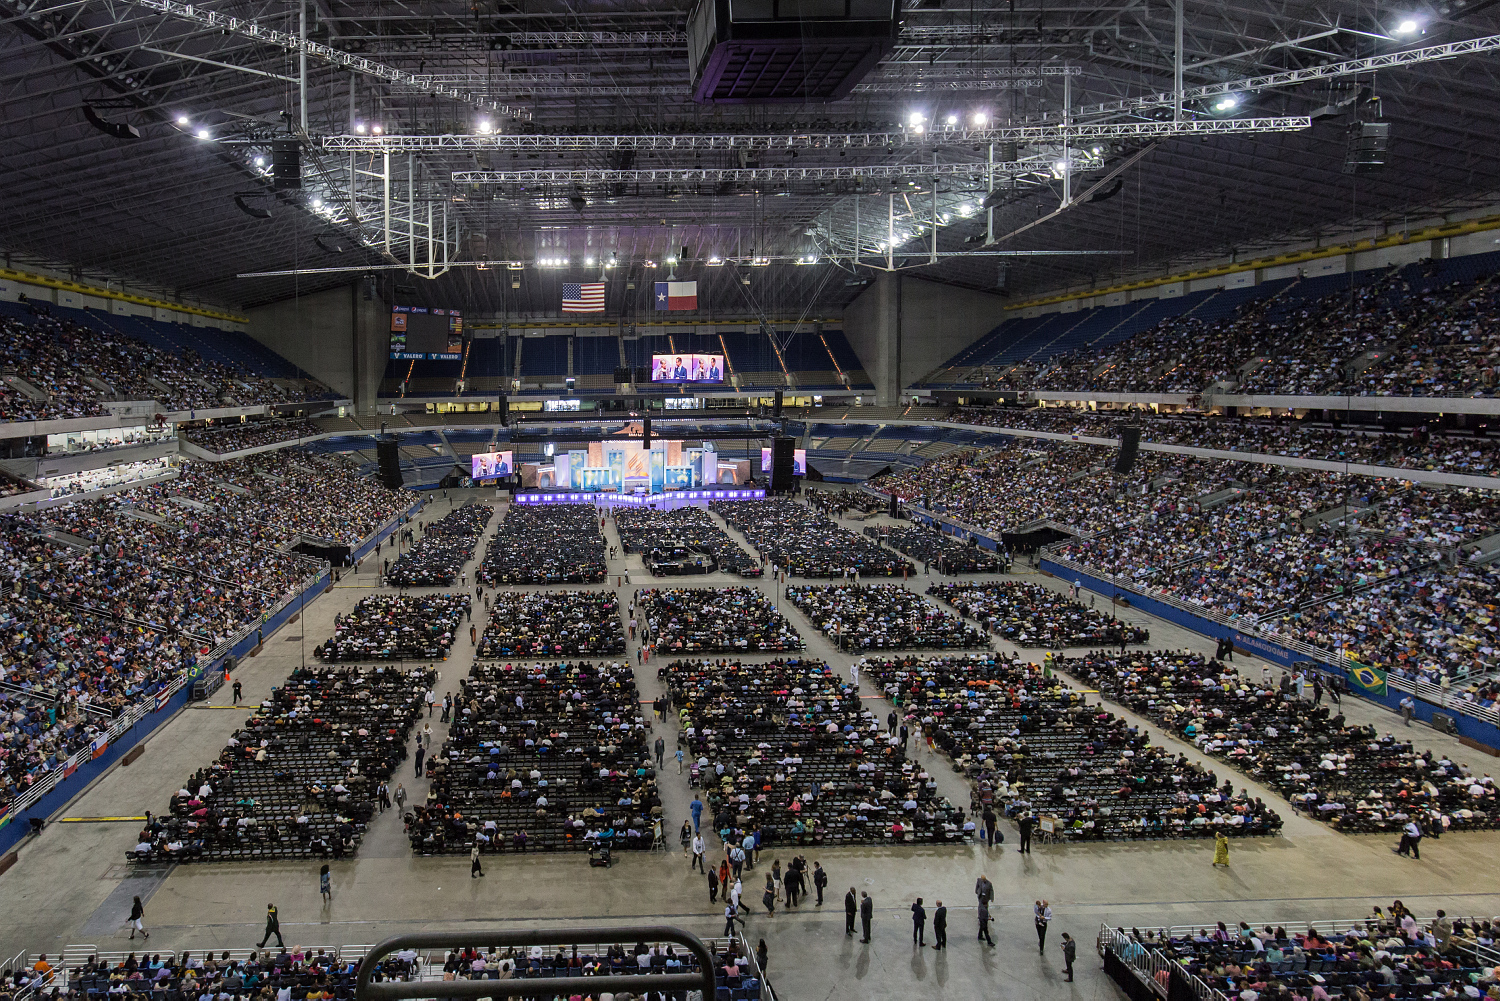 General Conference Session 2020 @ Indiana Convention Centre & Lucas Oil Stadium